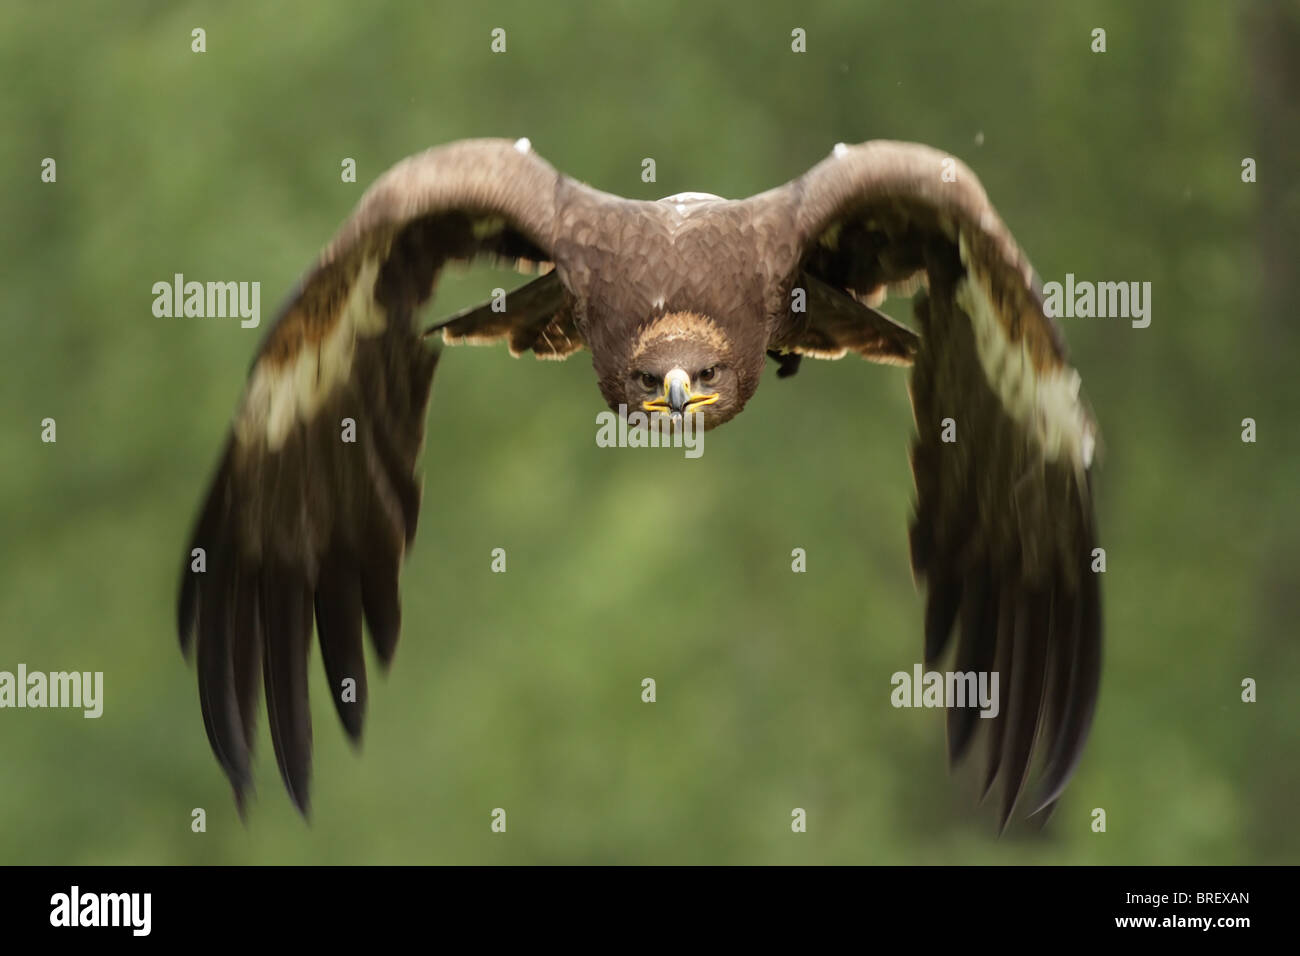 Golden Eagle (Aquila chrysaetos) in flight. - Stock Image